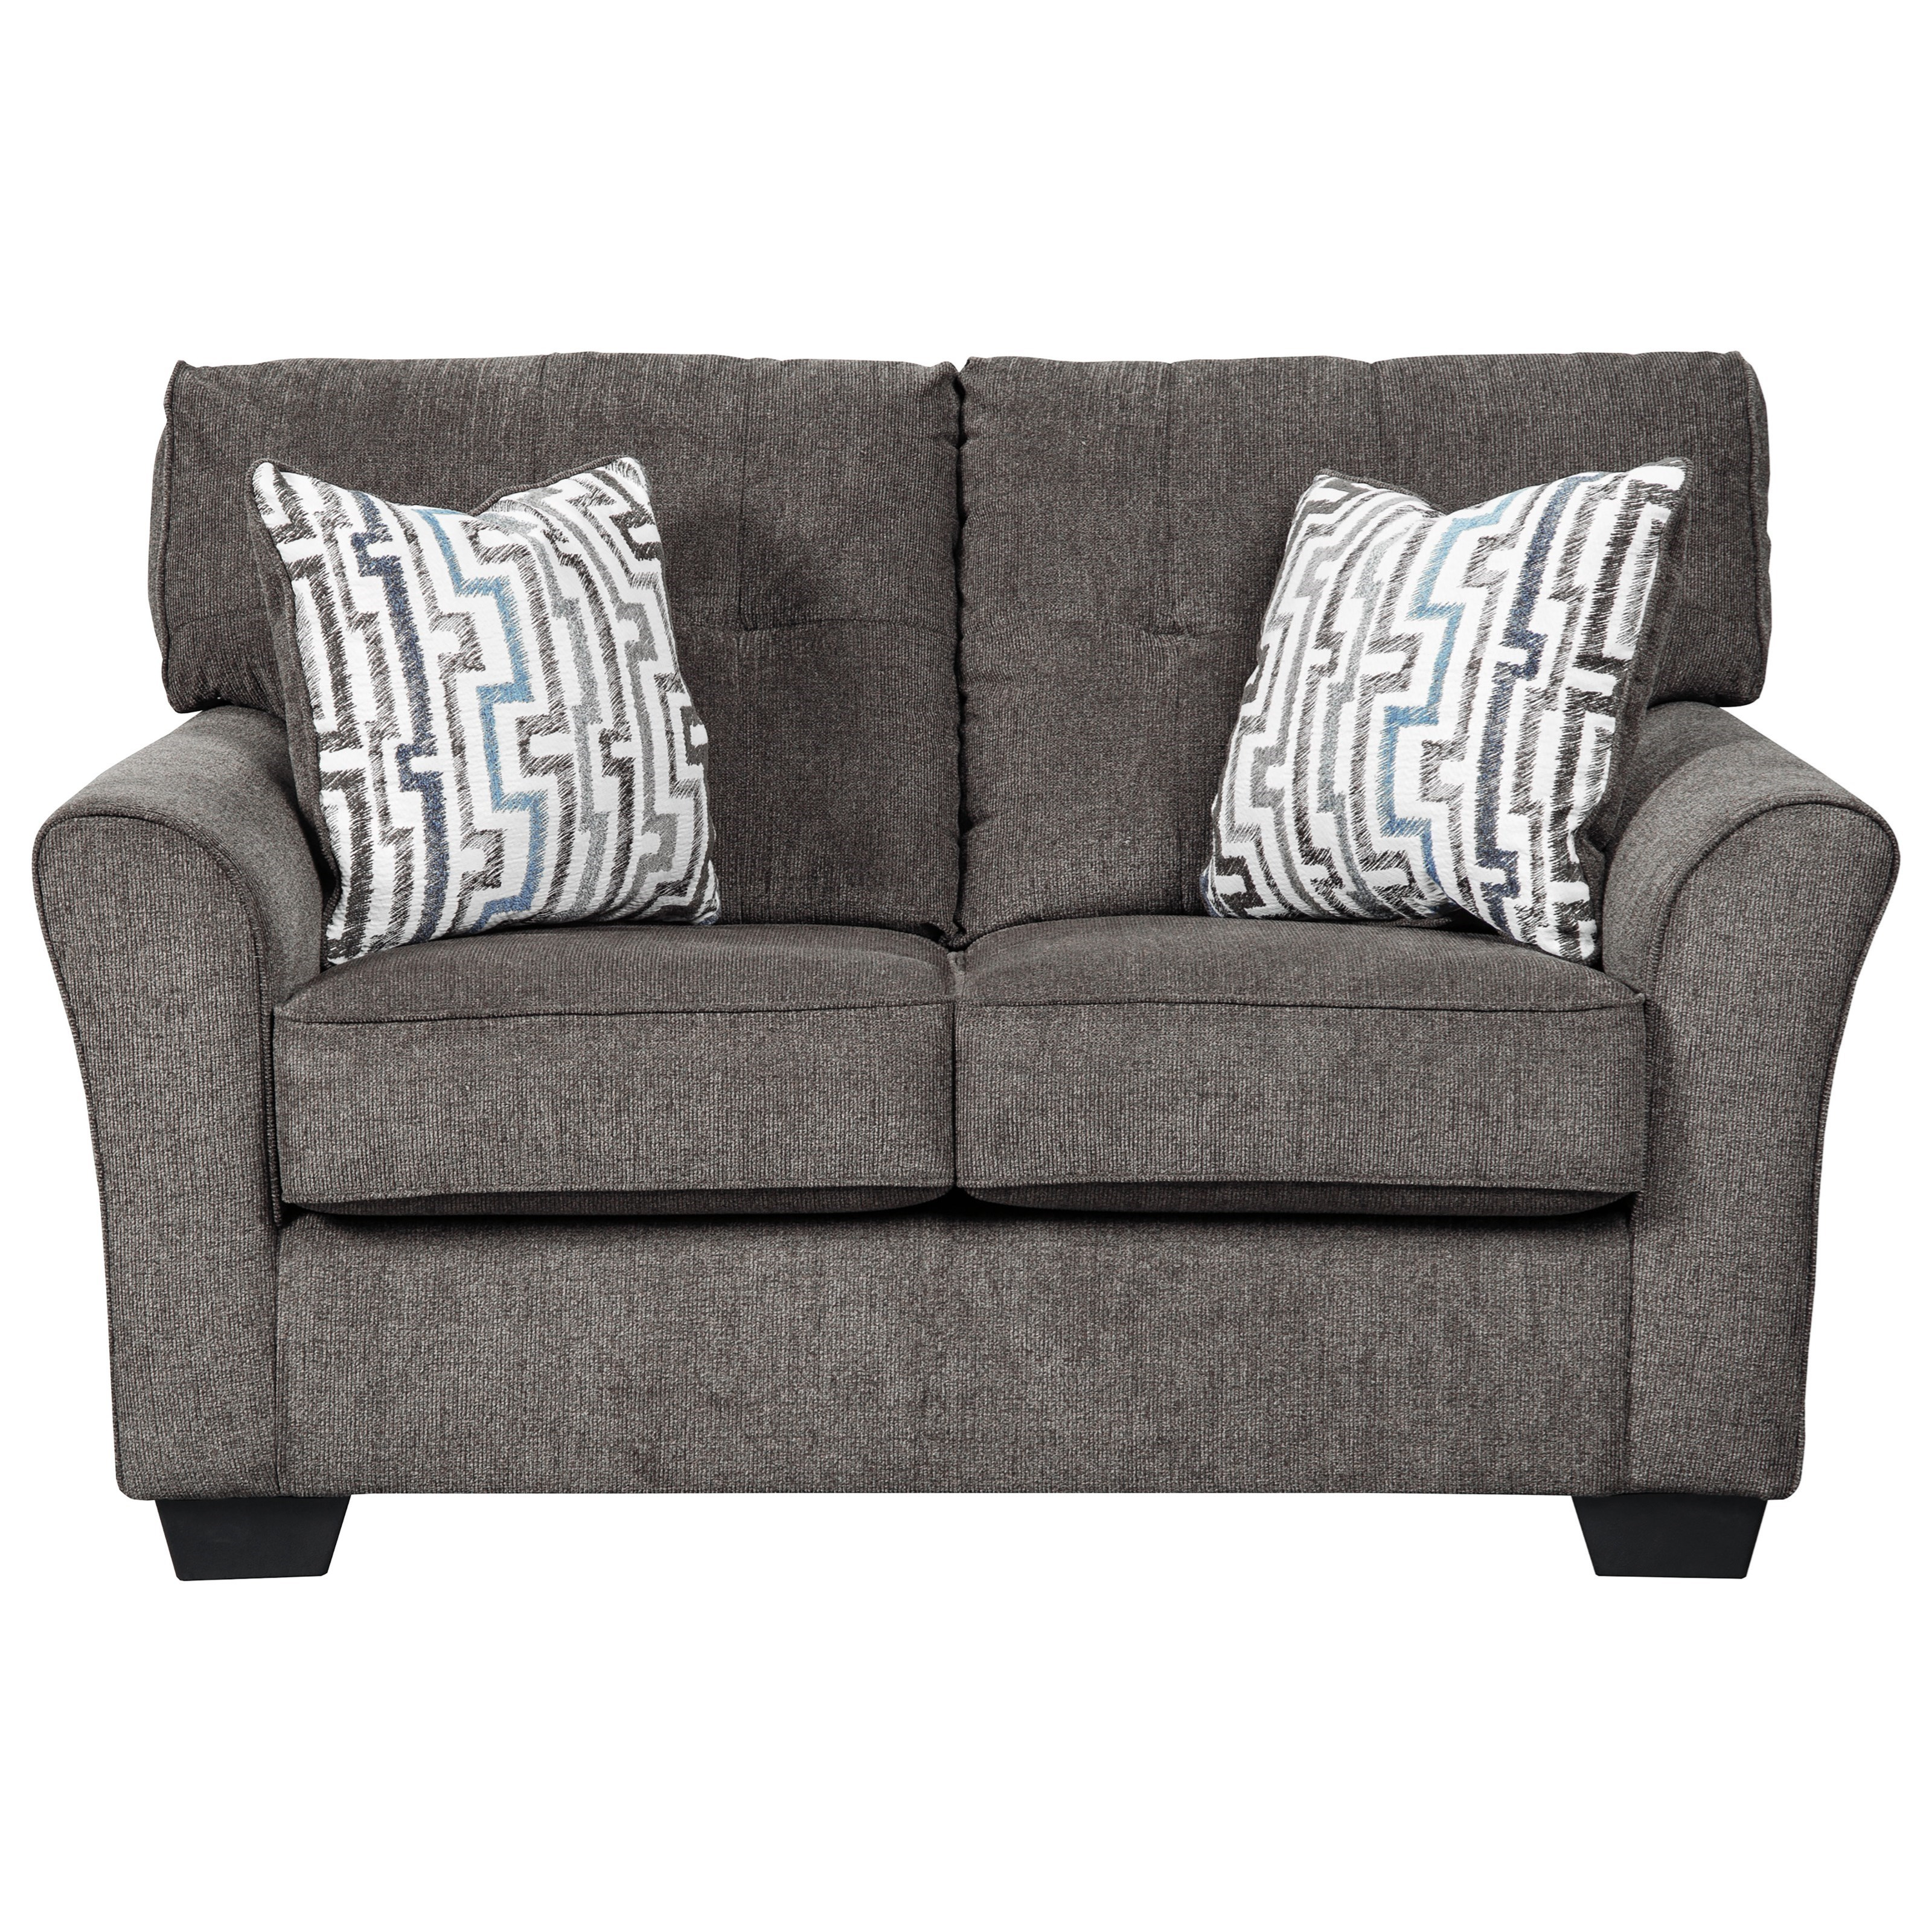 Benchcraft Alsen Loveseat - Item Number: 7390135